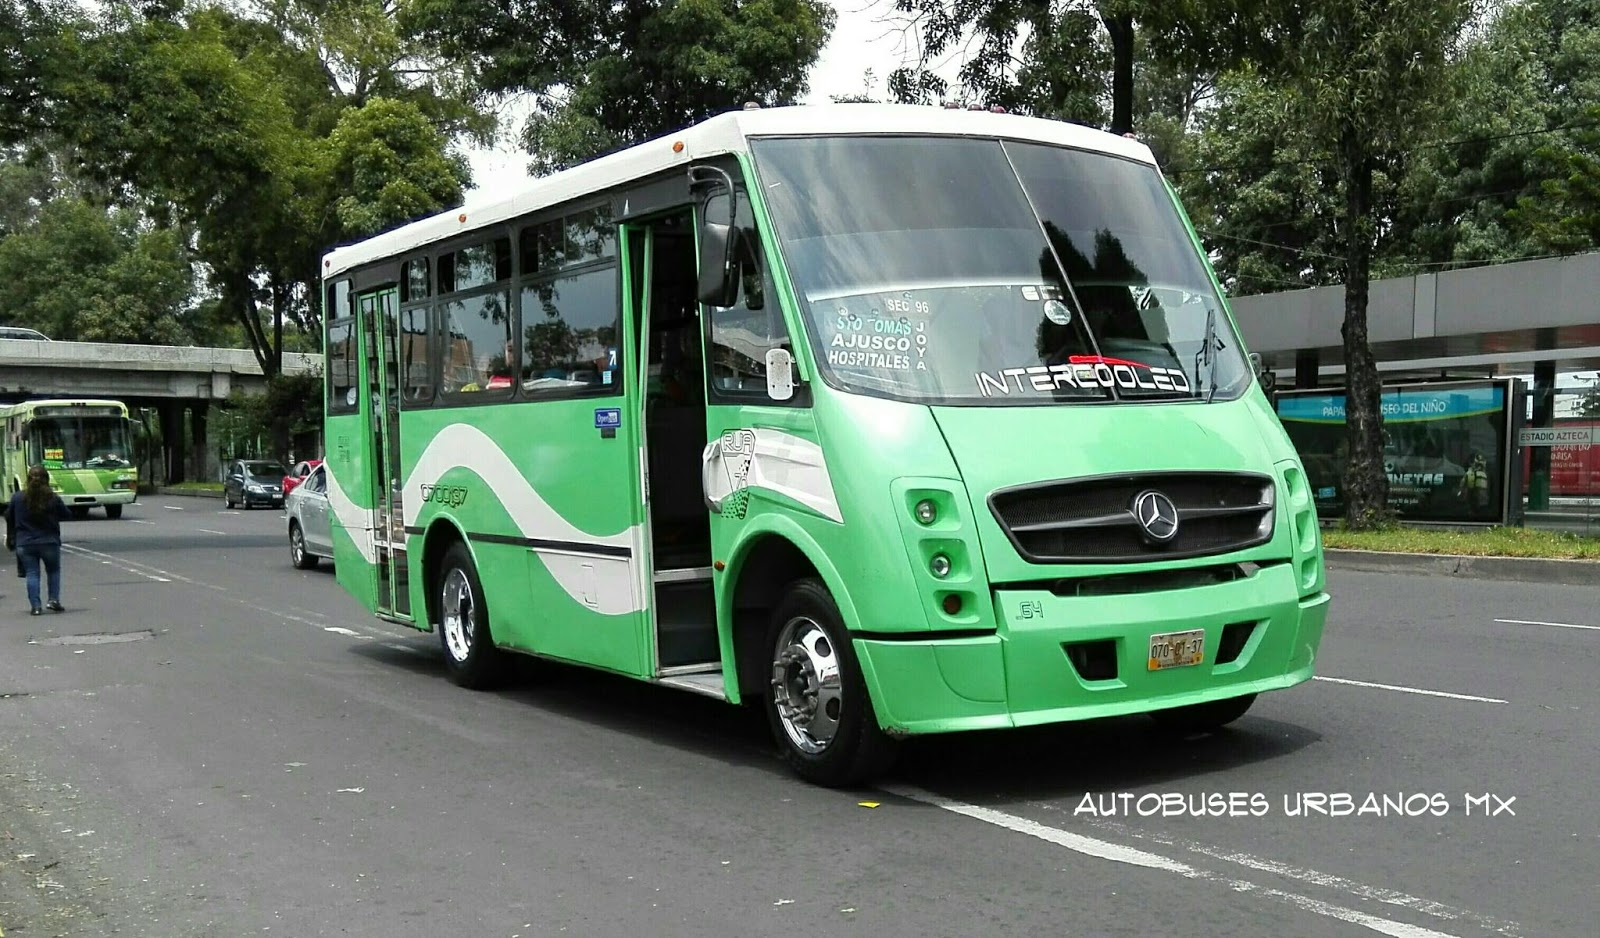 Mercedes-benz operbus photo - 10